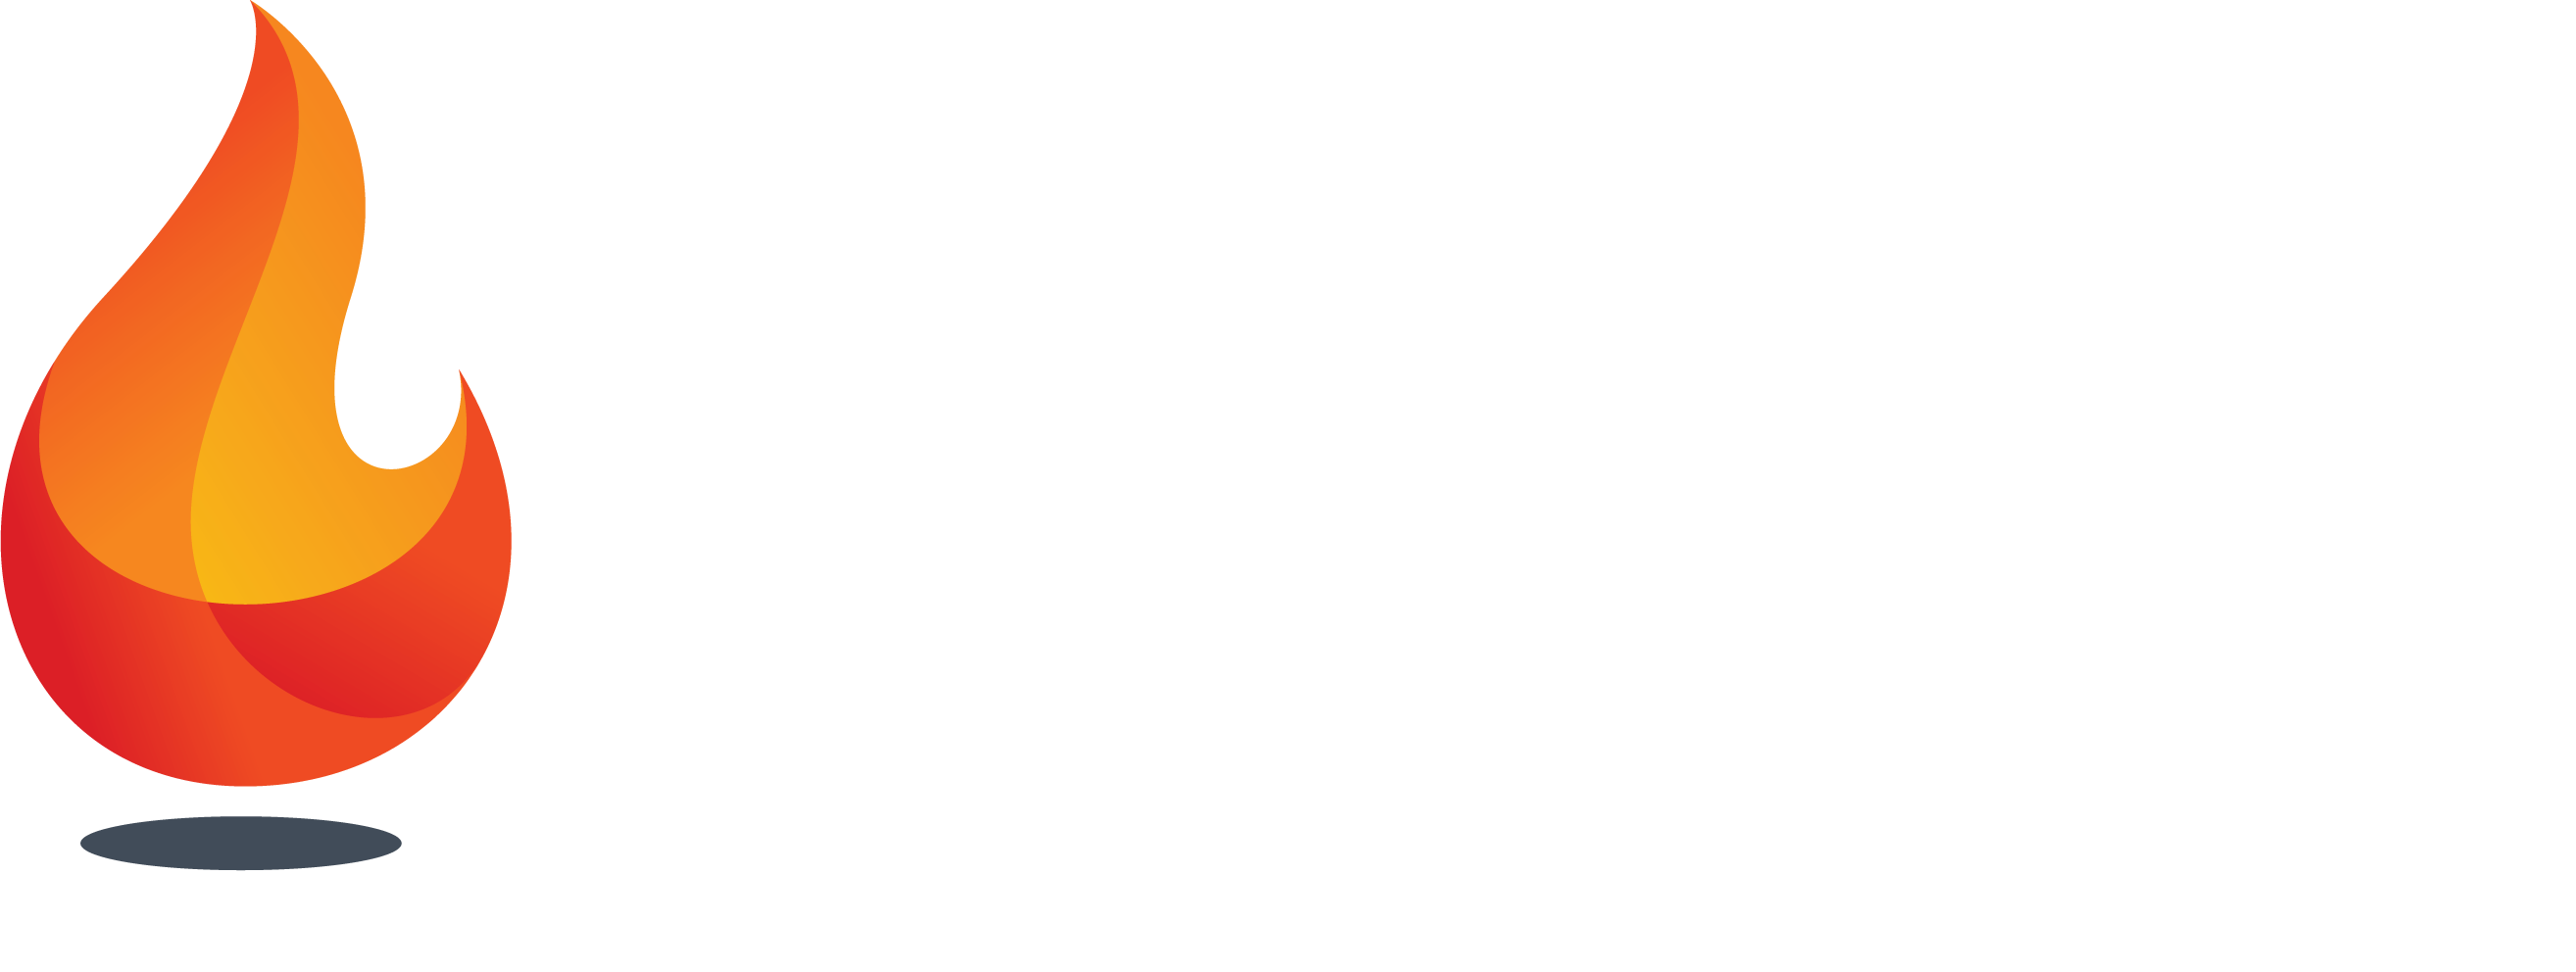 Georgia Innovation Grants - GaETC Grants